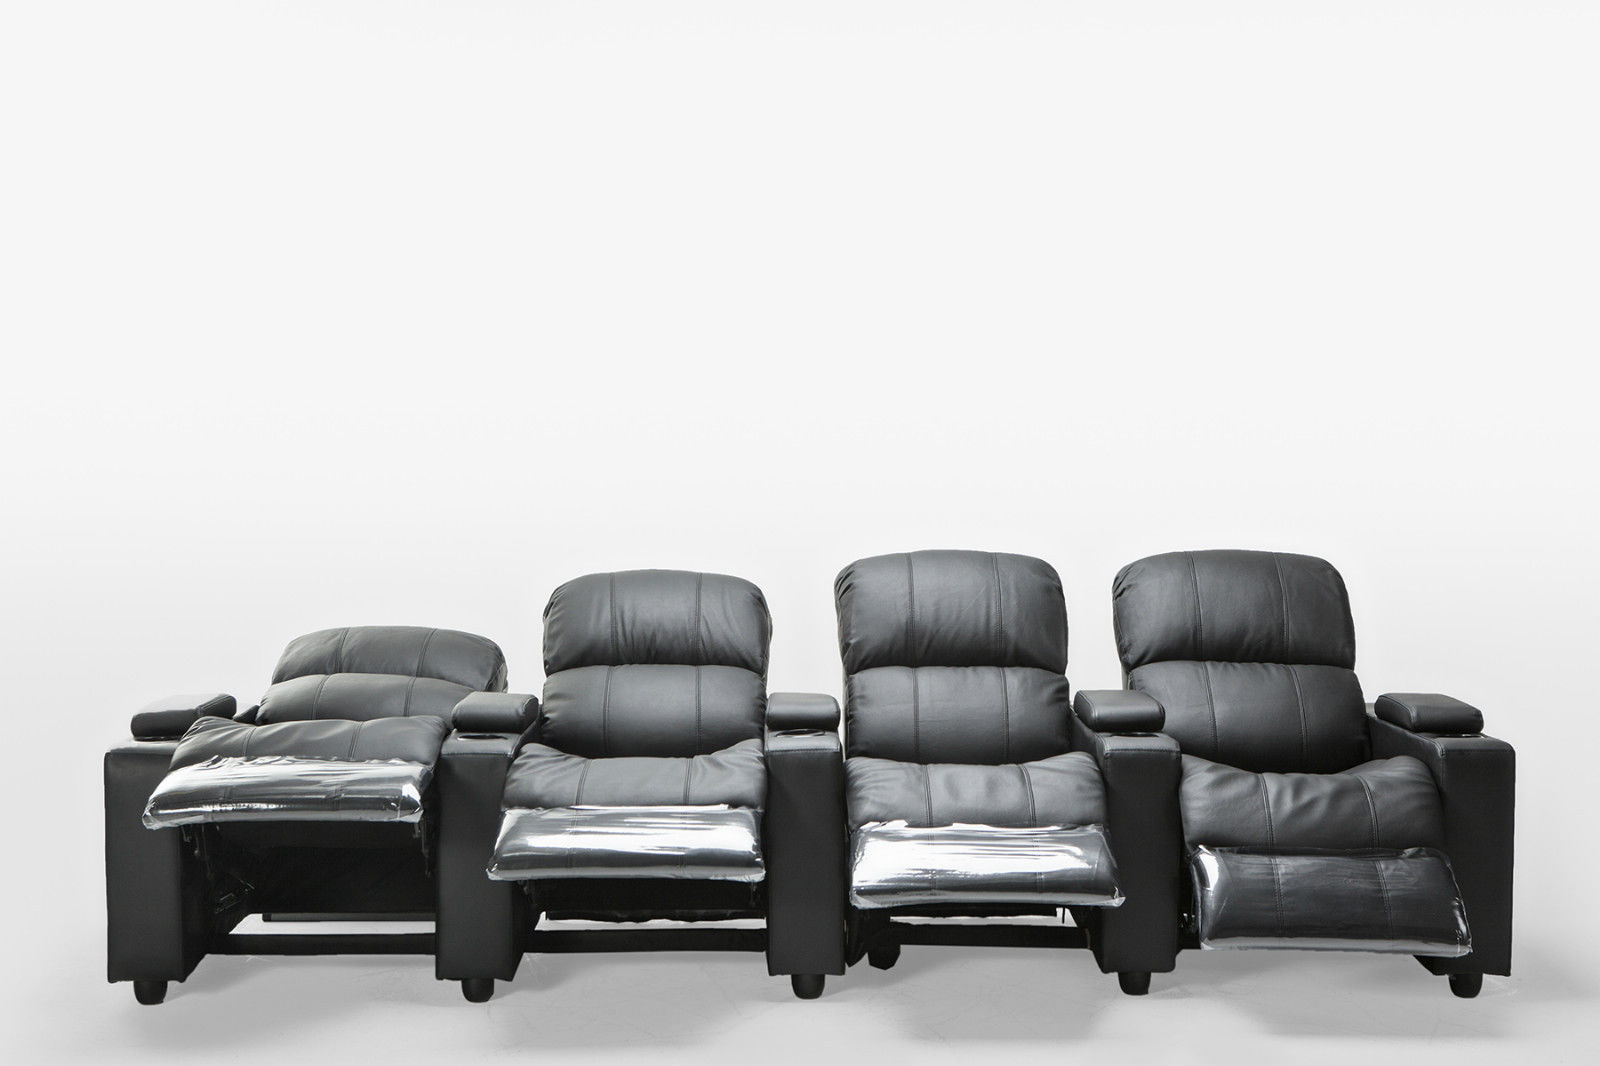 Image Gallery & Sophie Leather 4 Seater Home Theatre Recliner Sofa Lounge with Cup ... islam-shia.org